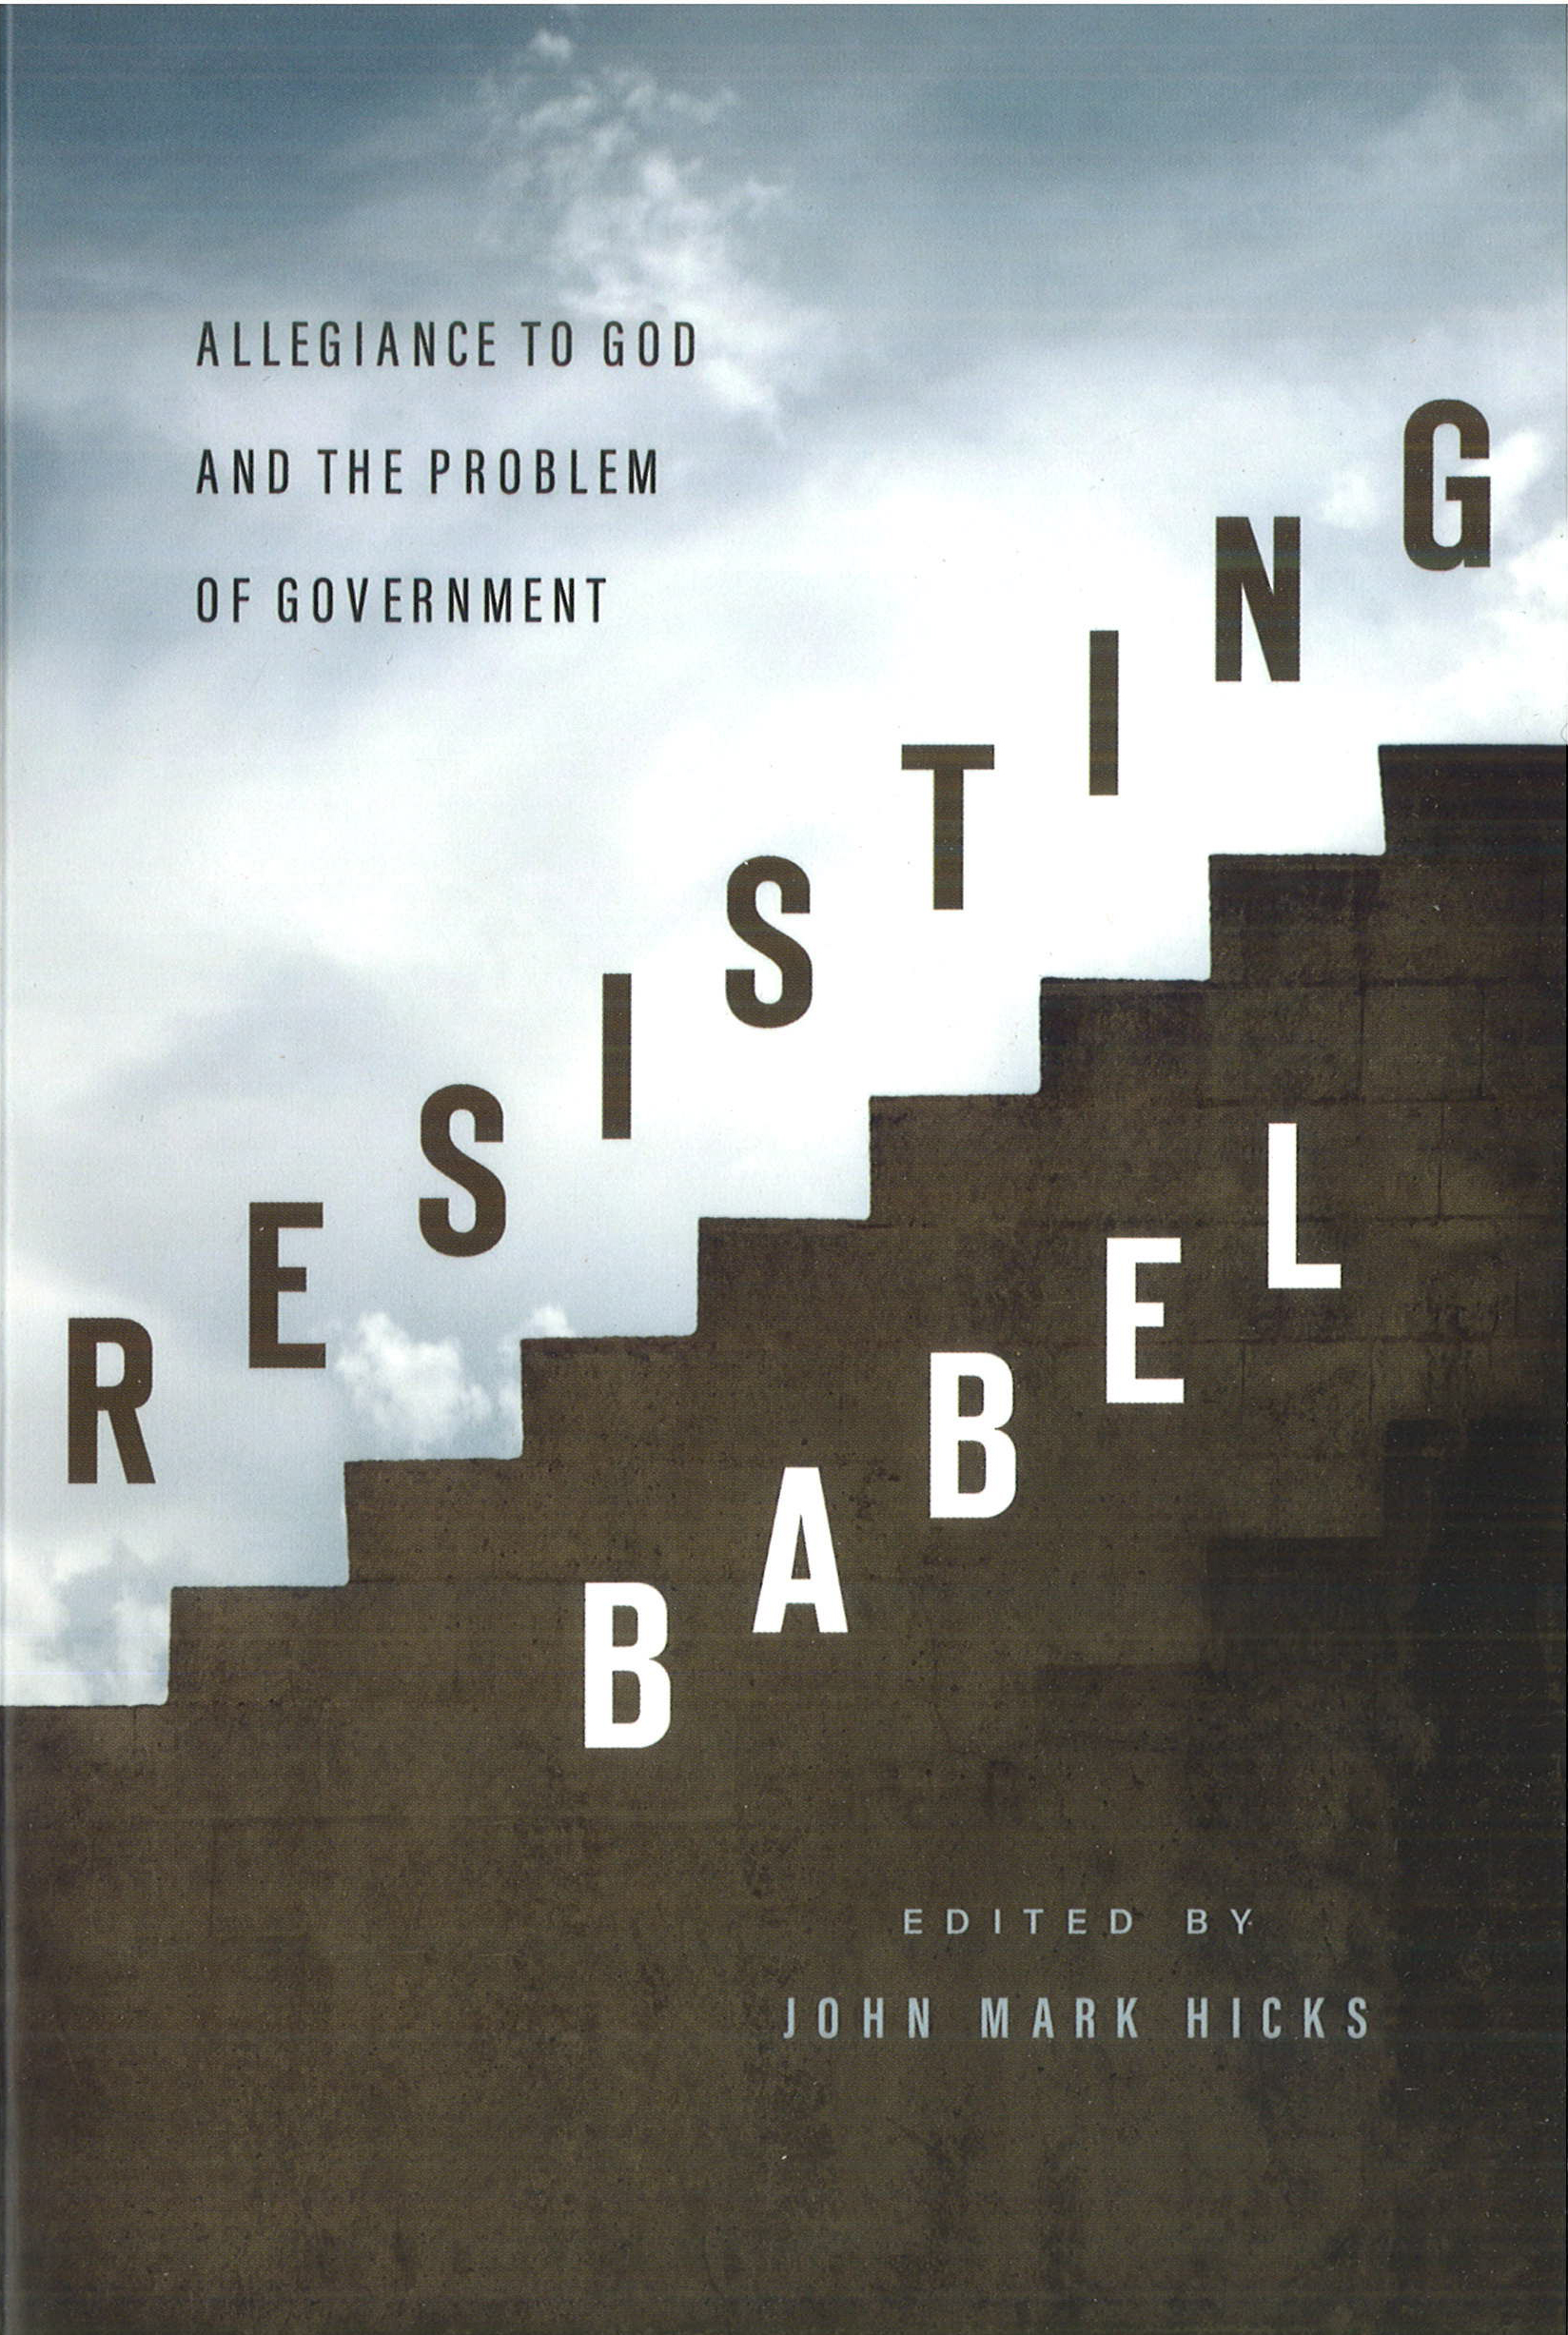 John Mark Hicks, editor. Resisting Babel: Allegiance to God and the Problem of Government.